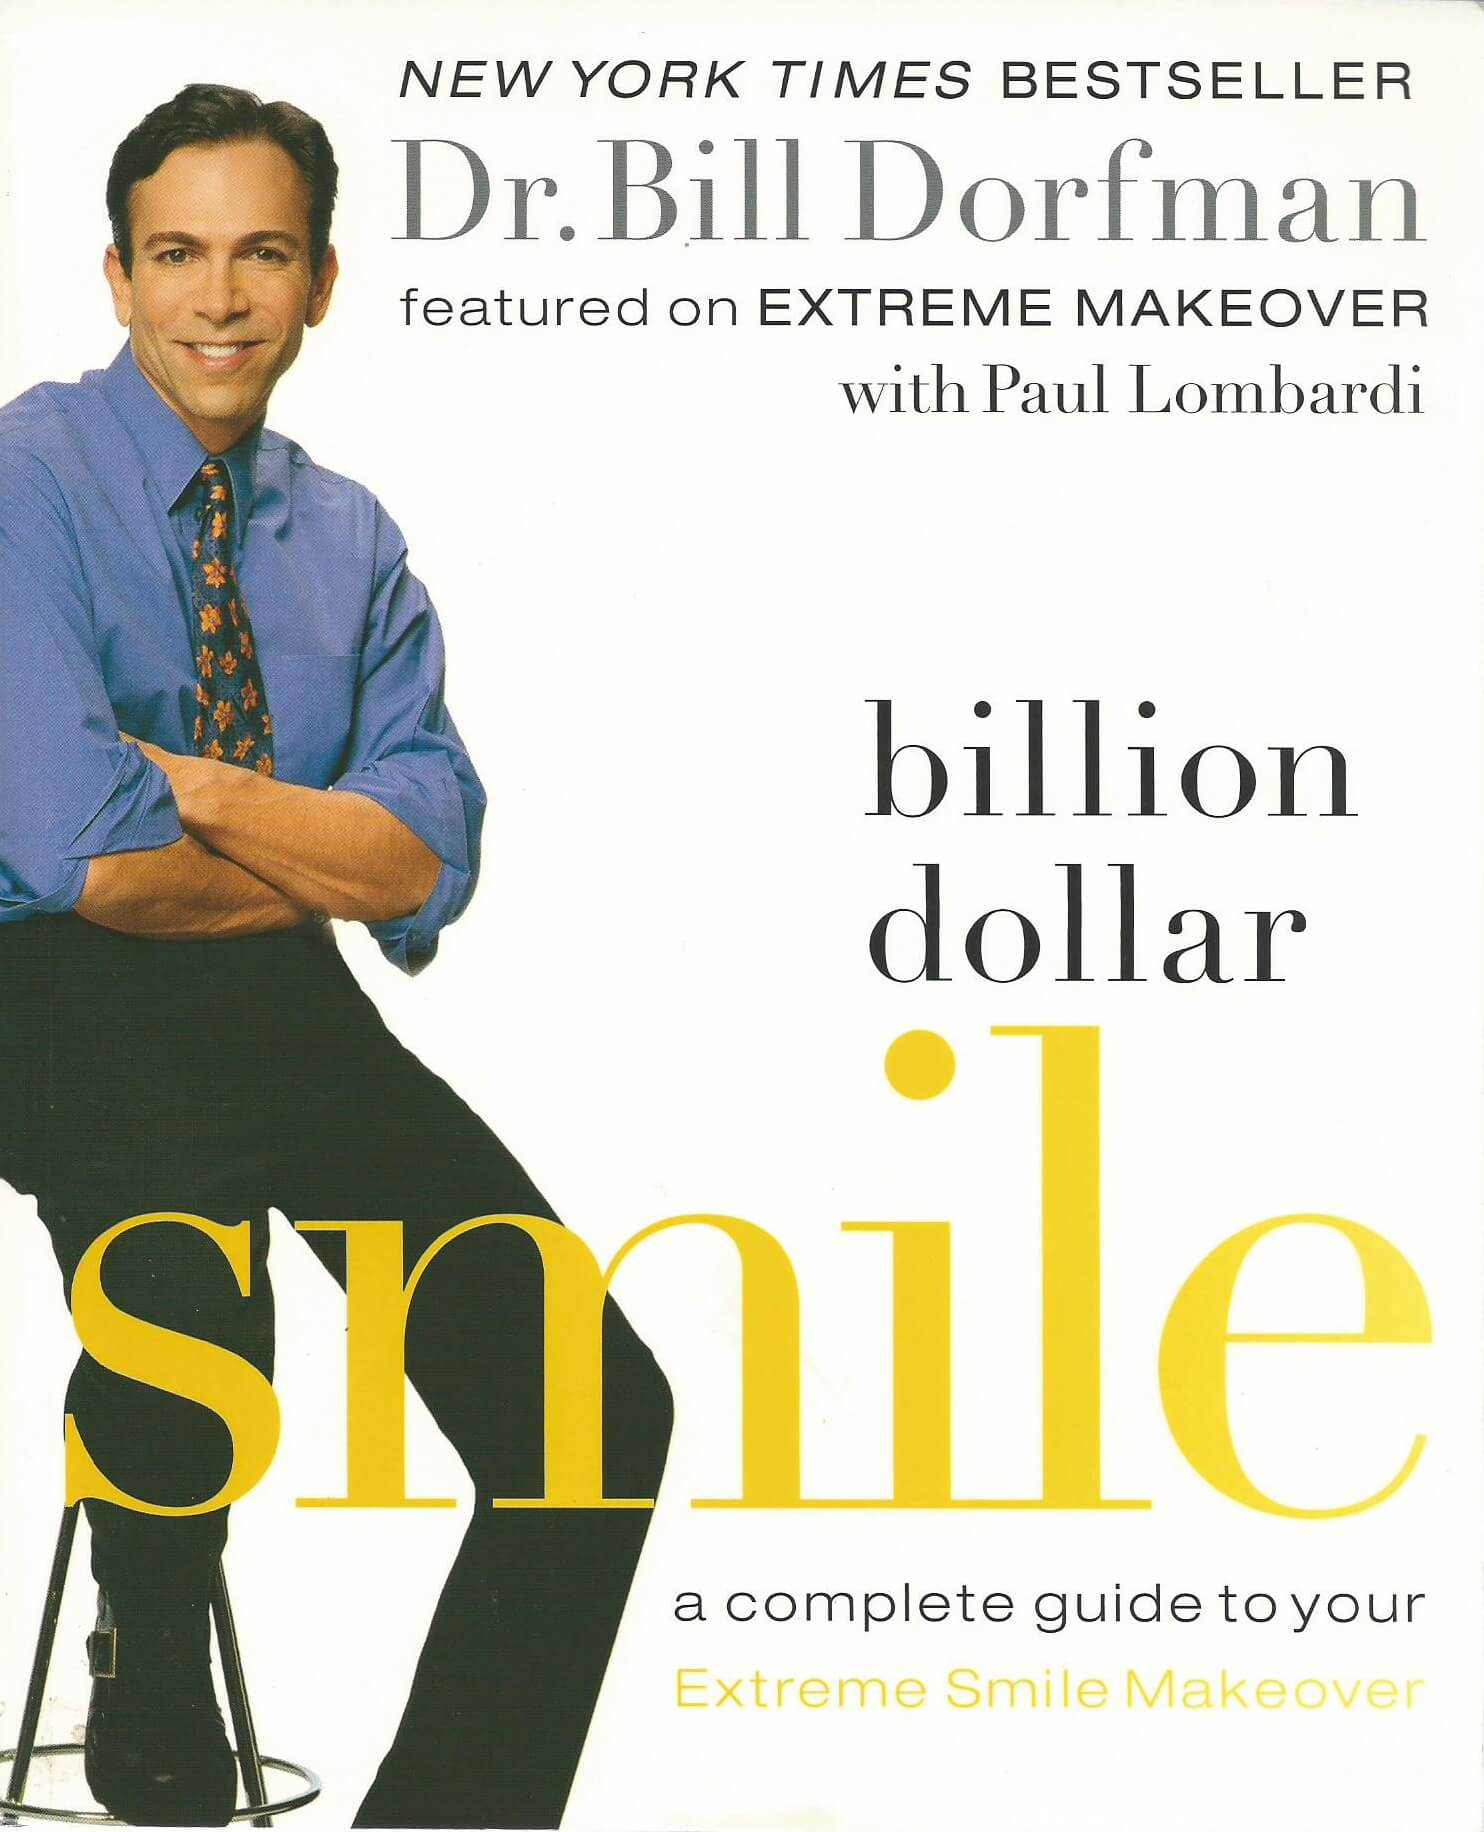 New York Times Best Seller Dr. Bill Dorfman's Bill Dollar Smile - A Complete Guide to Your Extreme Smile Makeover